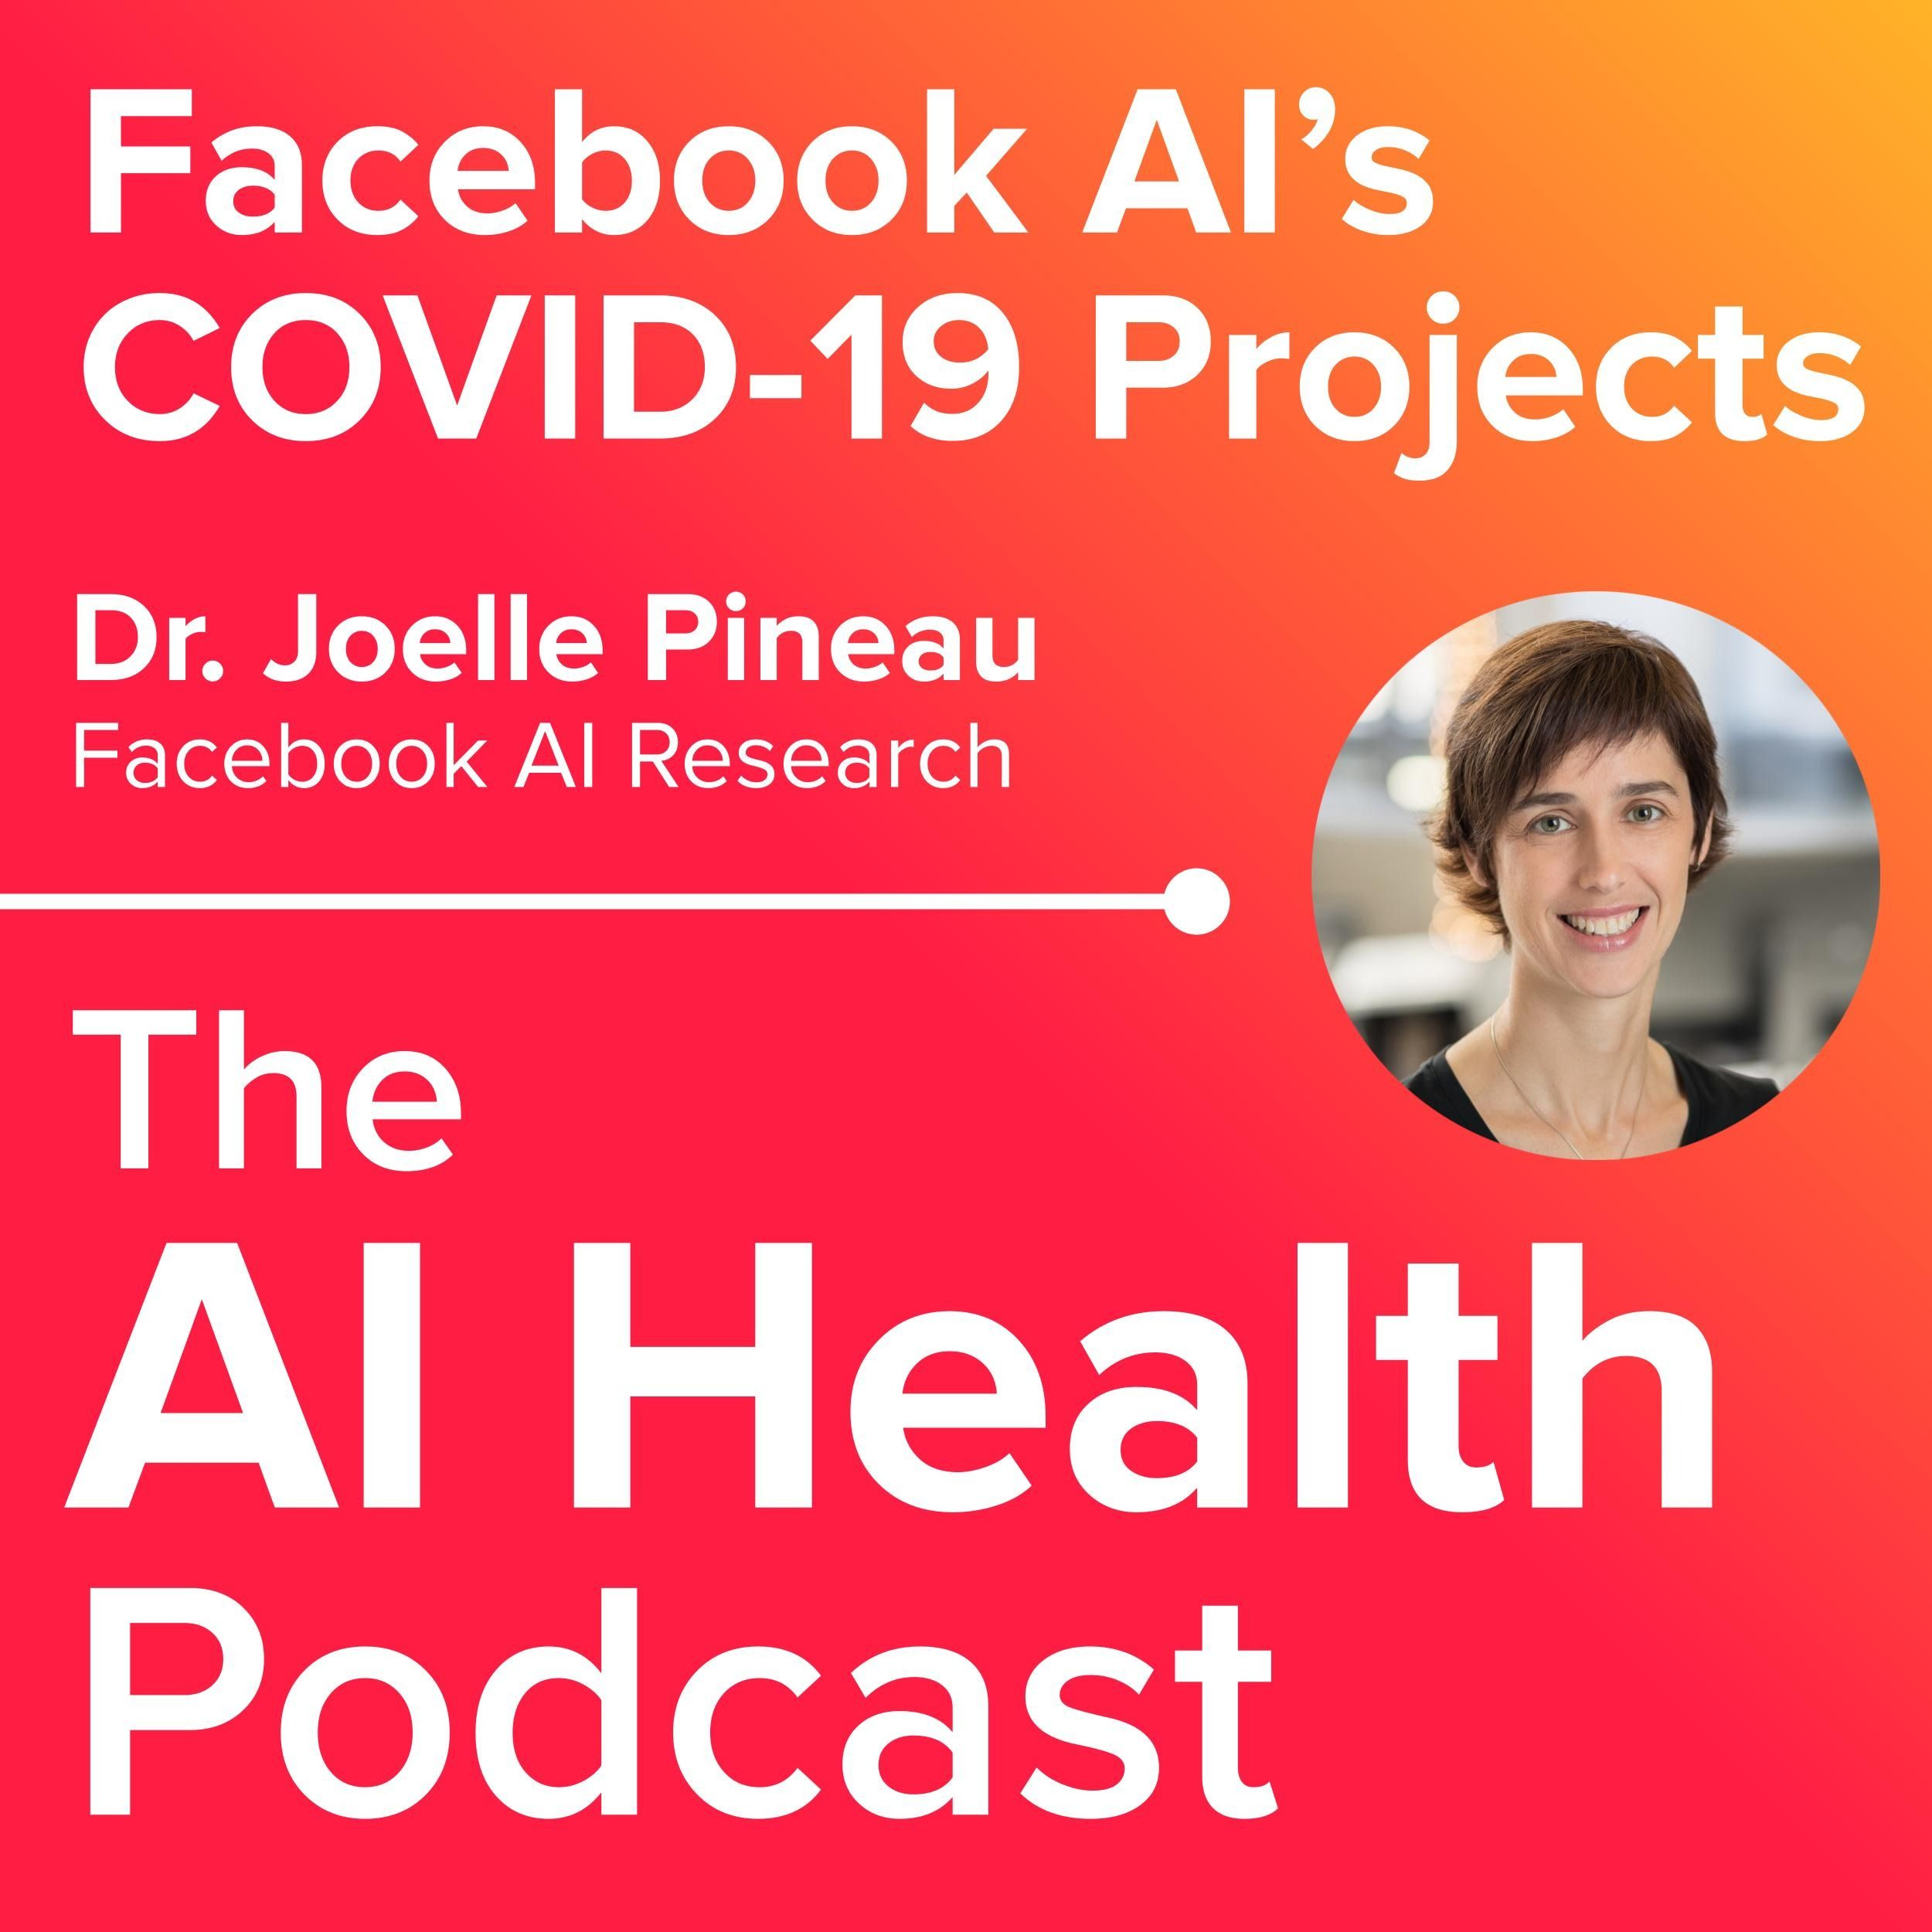 Facebook AI Research's Dr. Joelle Pineau on COVID-19 Projects